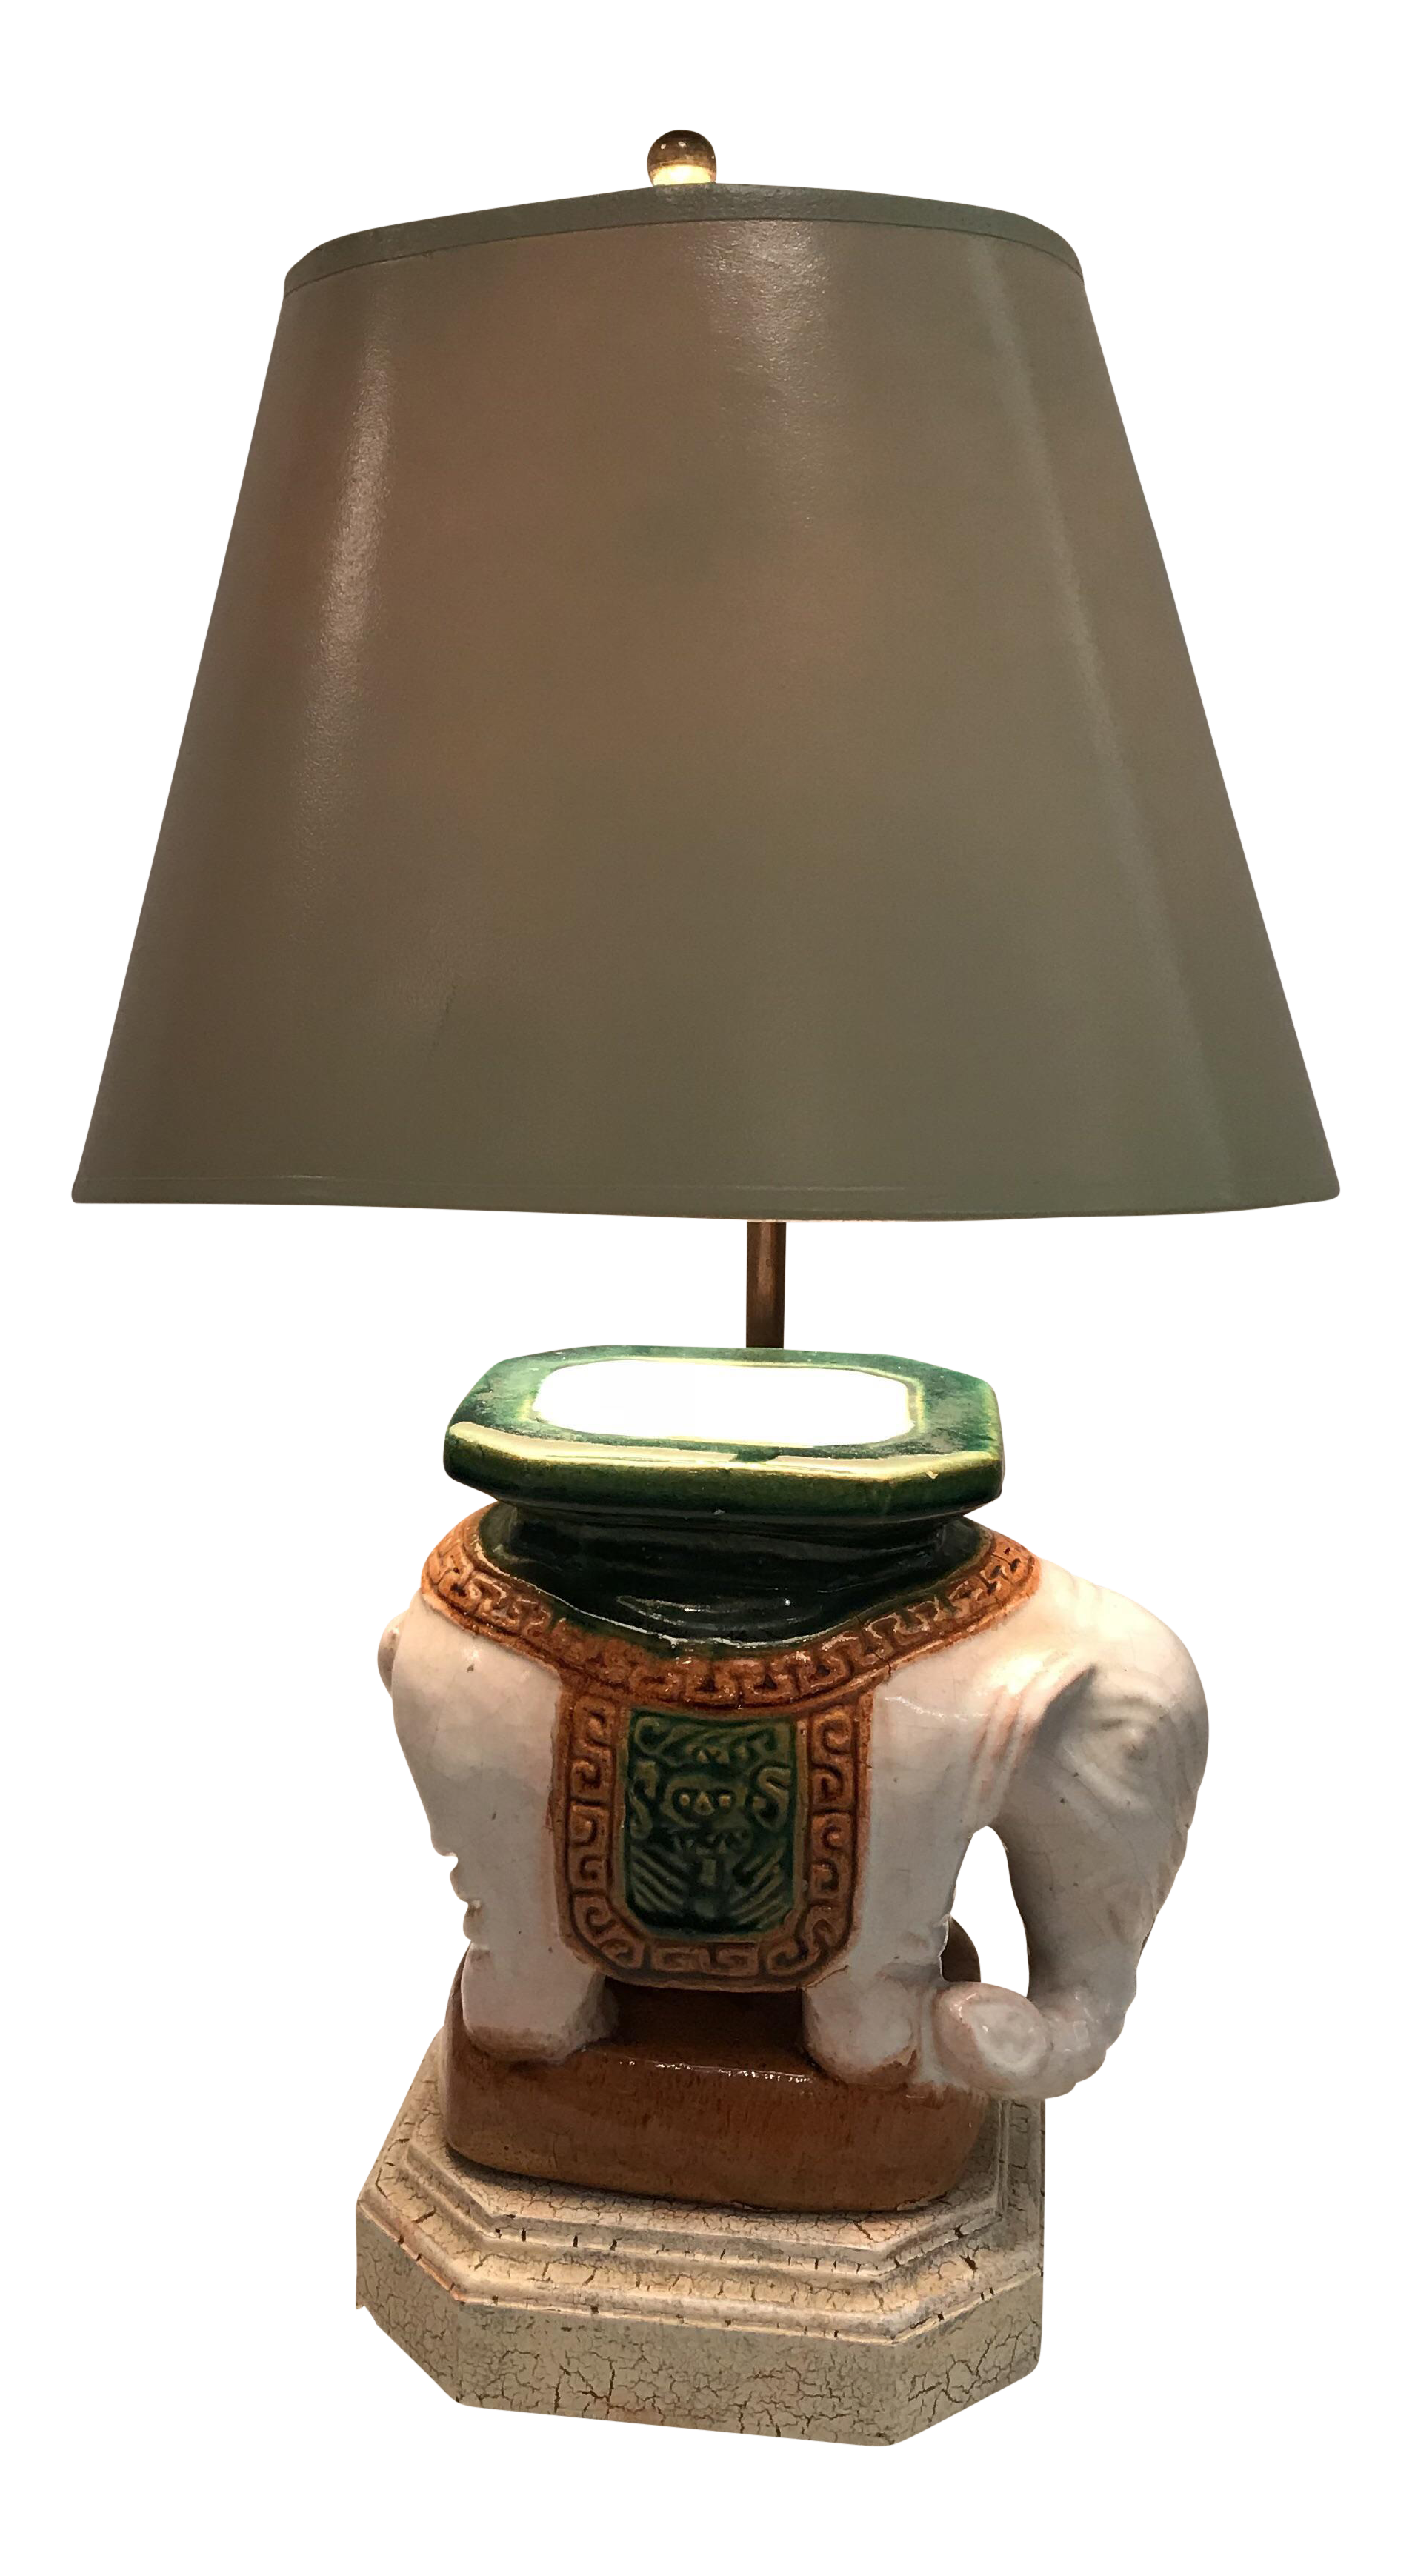 Vintage Ceramic Elephant Garden Stool Lamp | Chairish